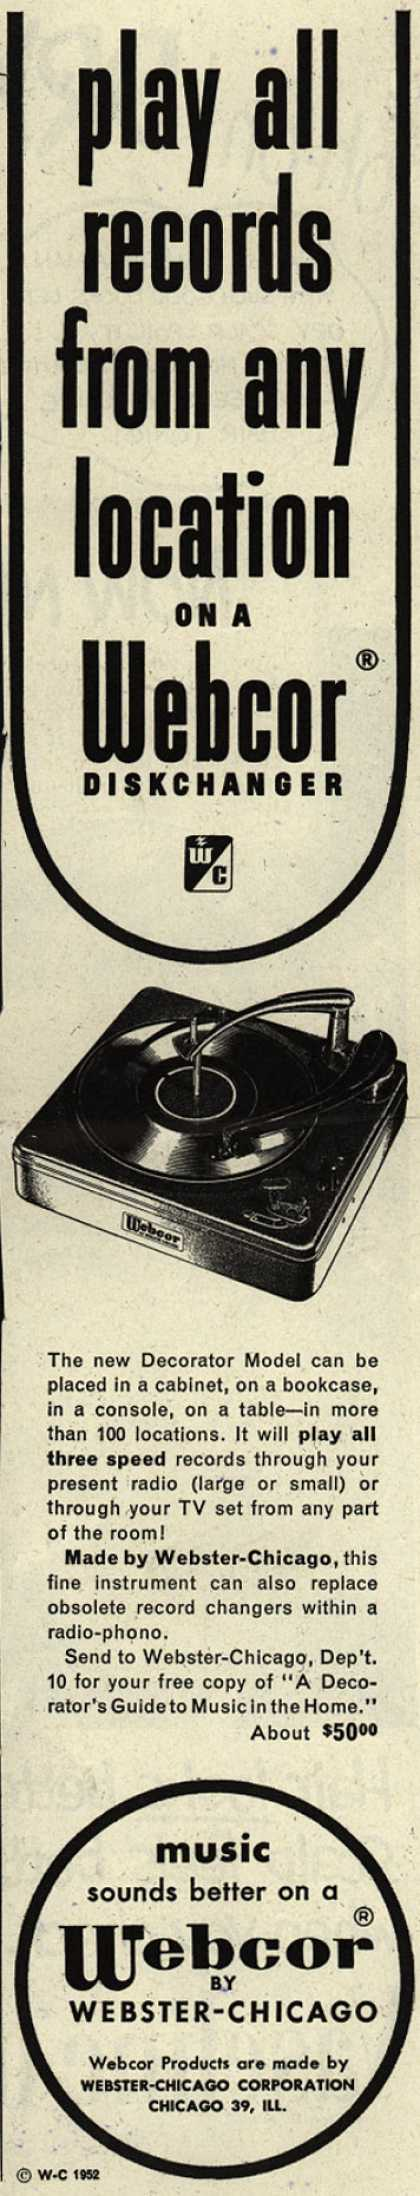 Webster-Chicago Corporation's Diskchanger – play all records from any location on a Webcor Diskchanger (1952)